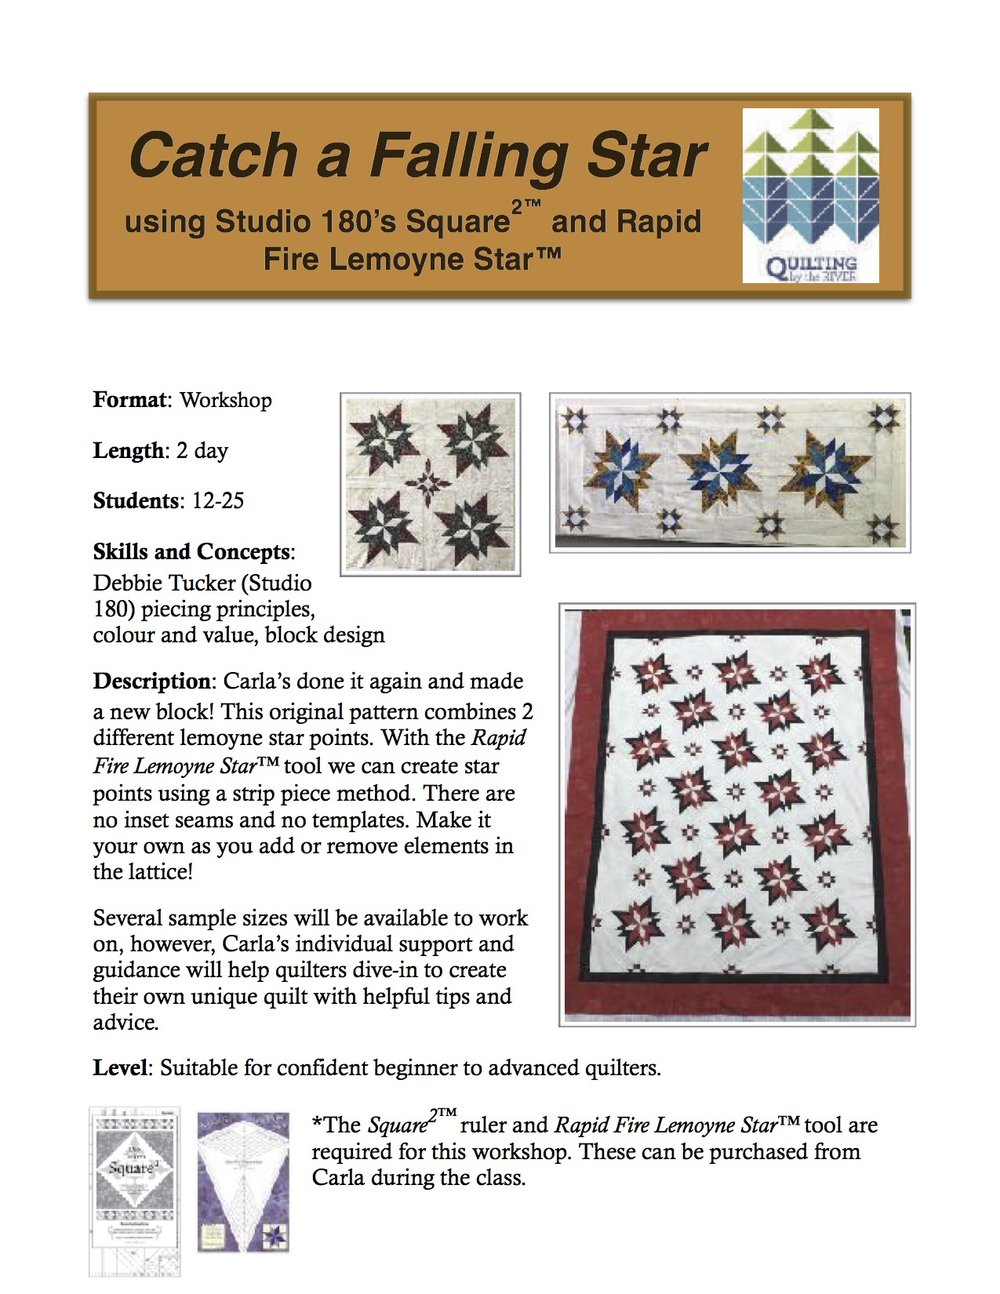 Catch a Falling Star copy.jpg